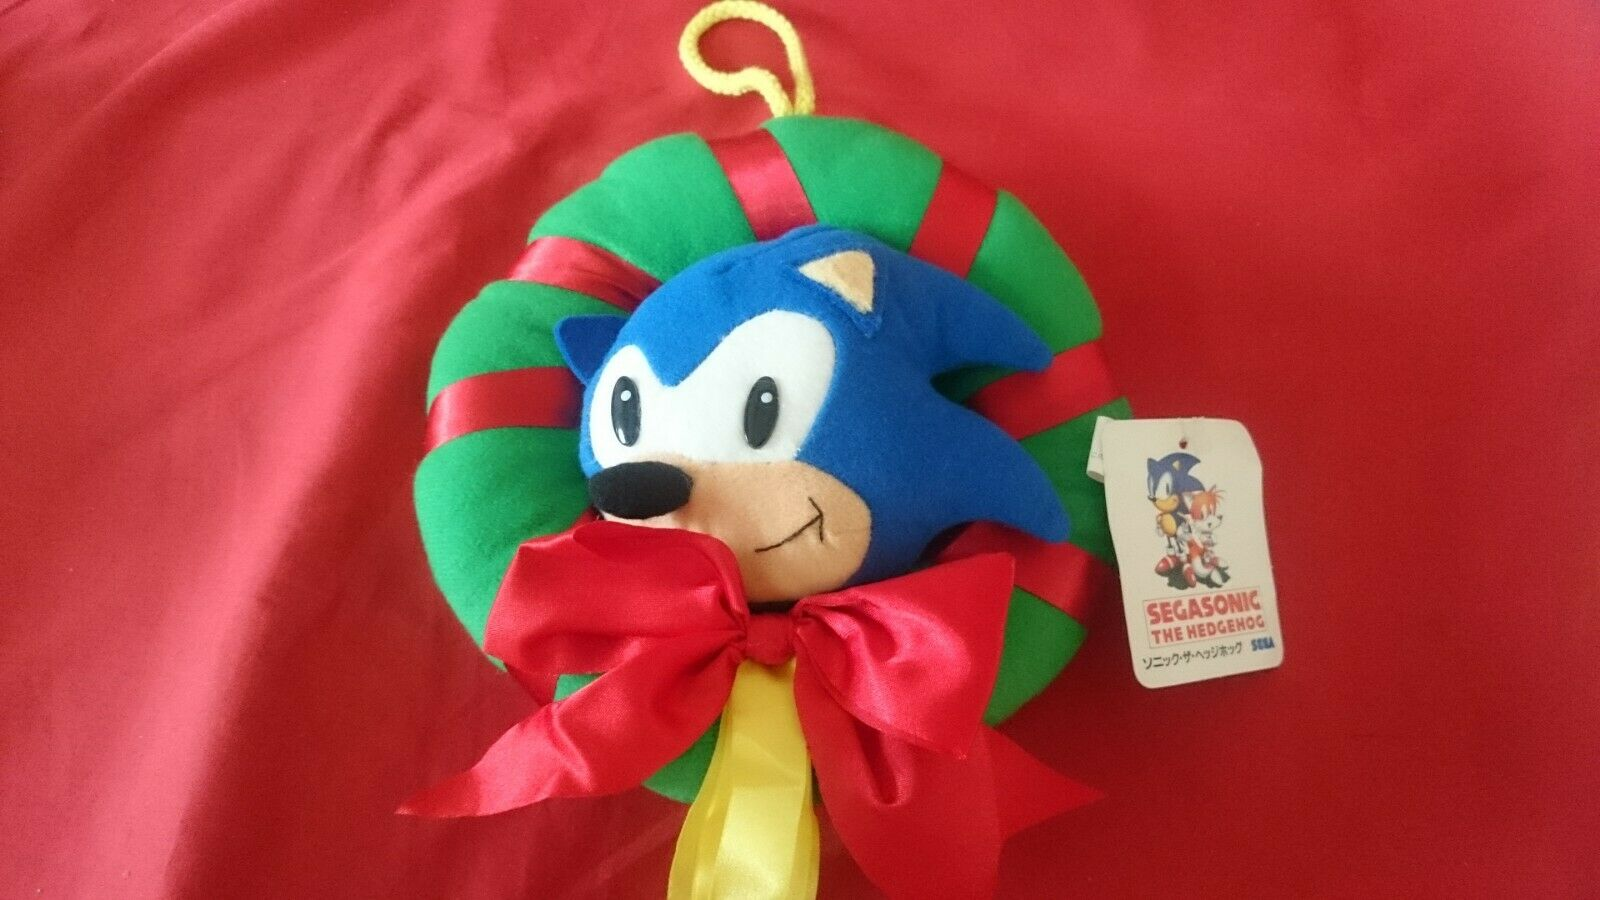 SEGA Sonic the hedgehog Plush Stuffed X'mas Christmas Wreath SEGA JAPAN 1994